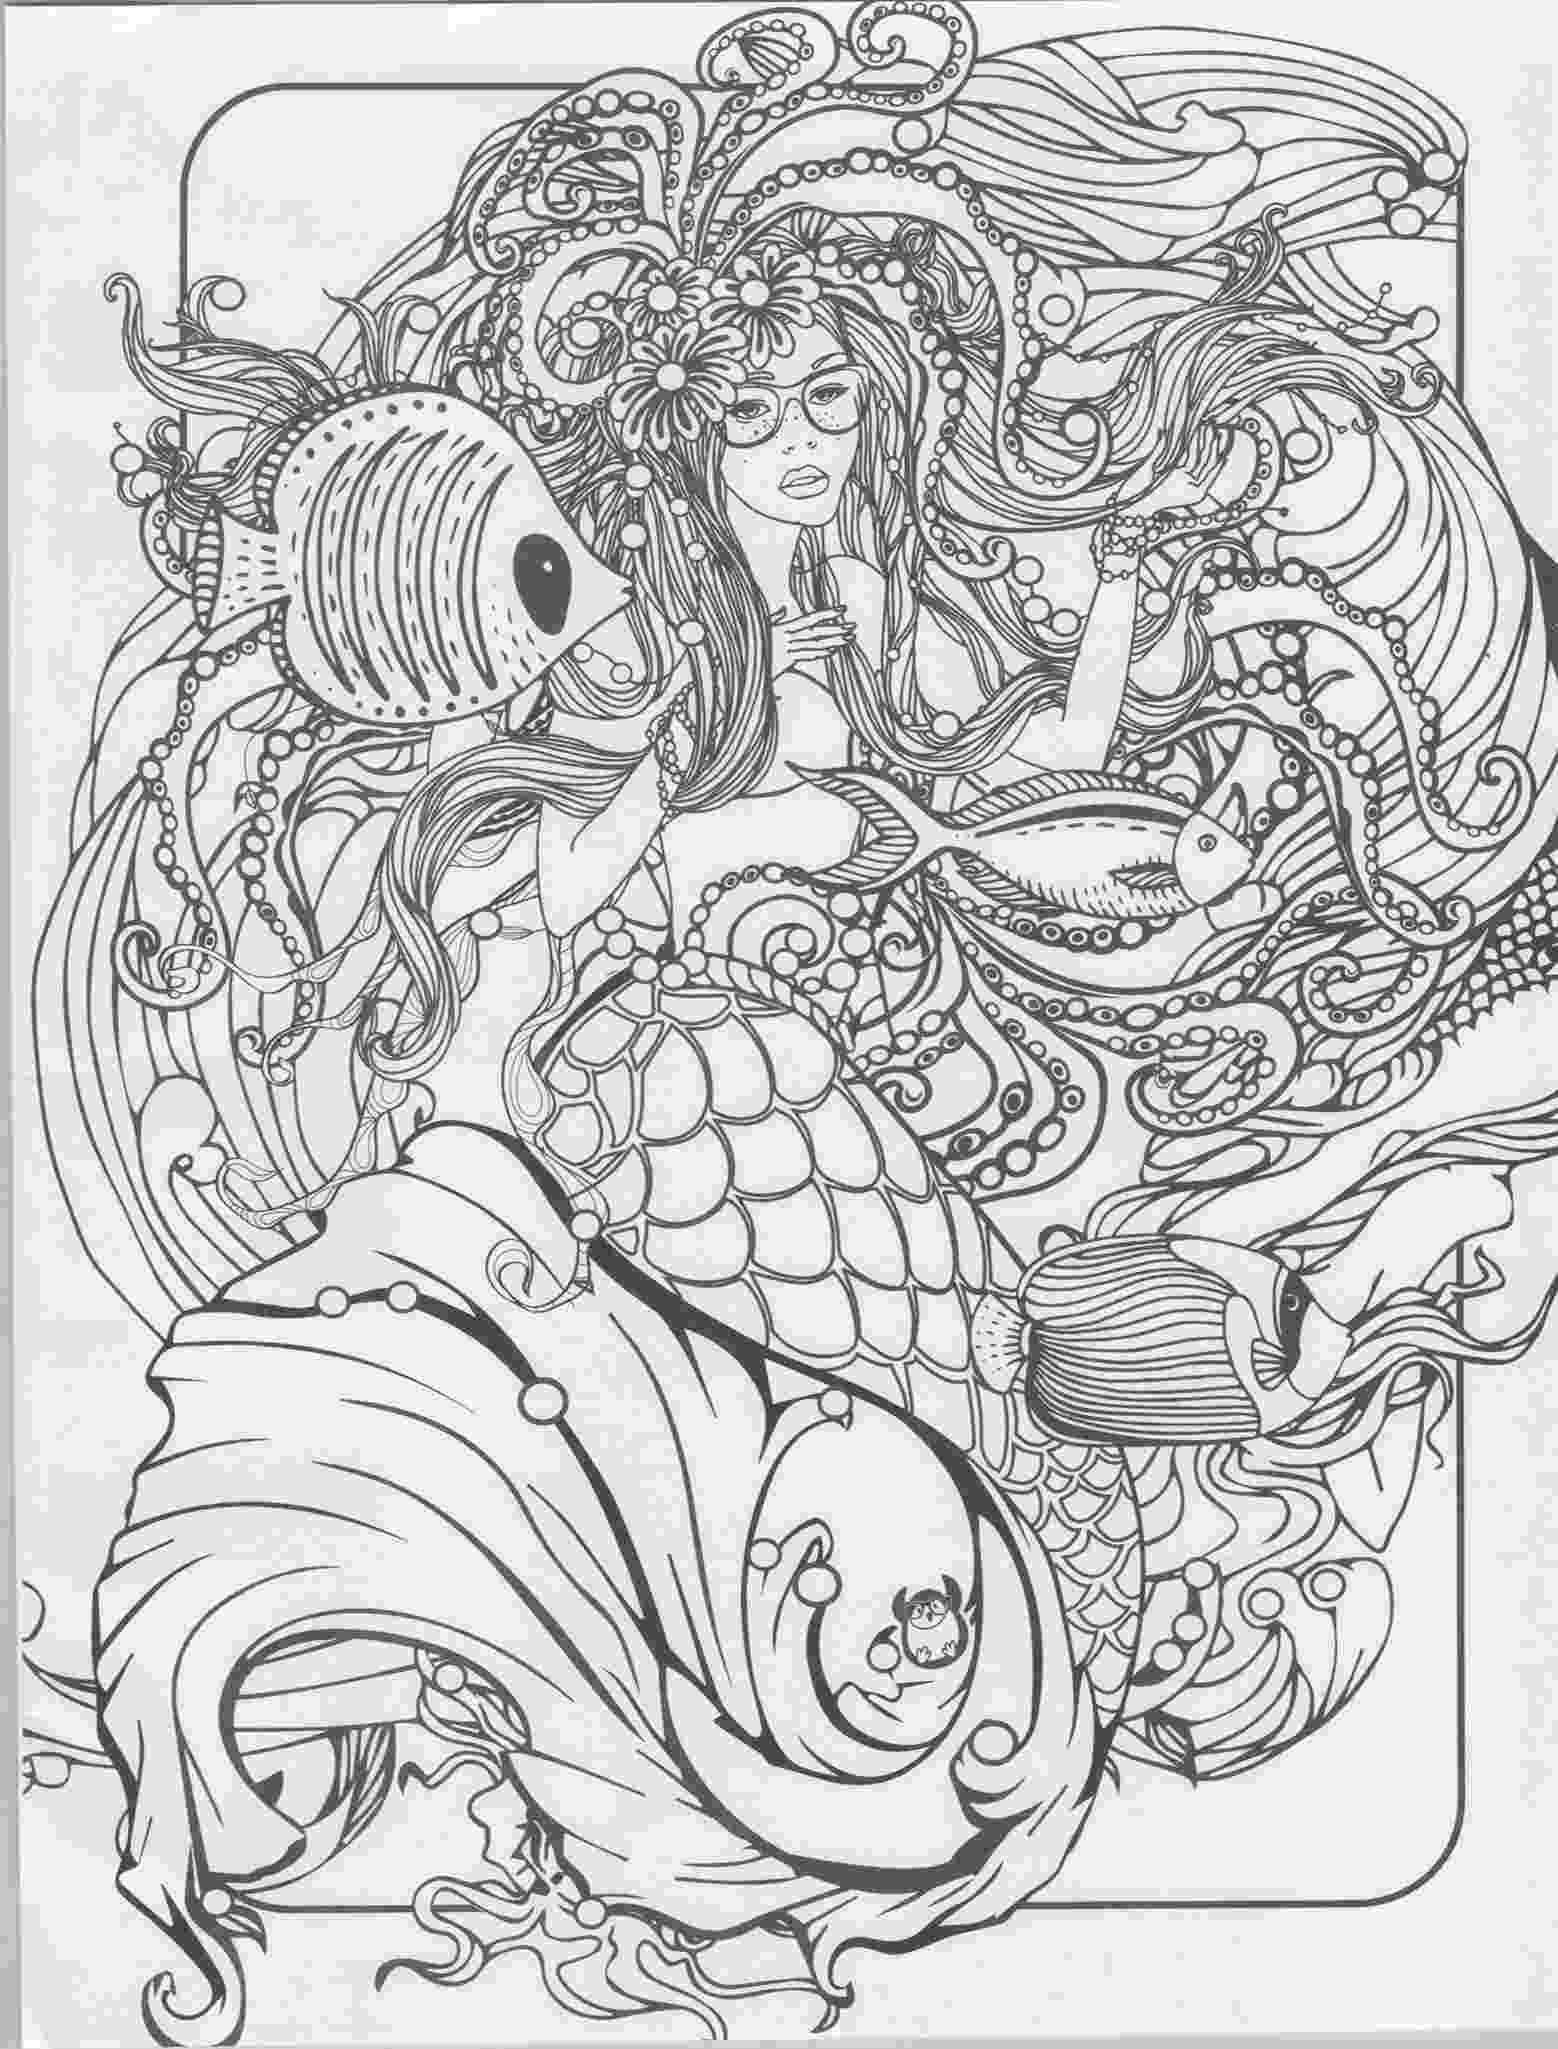 mermaid coloring pages for adults best mermaid coloring pages coloring books cleverpedia mermaid coloring for pages adults